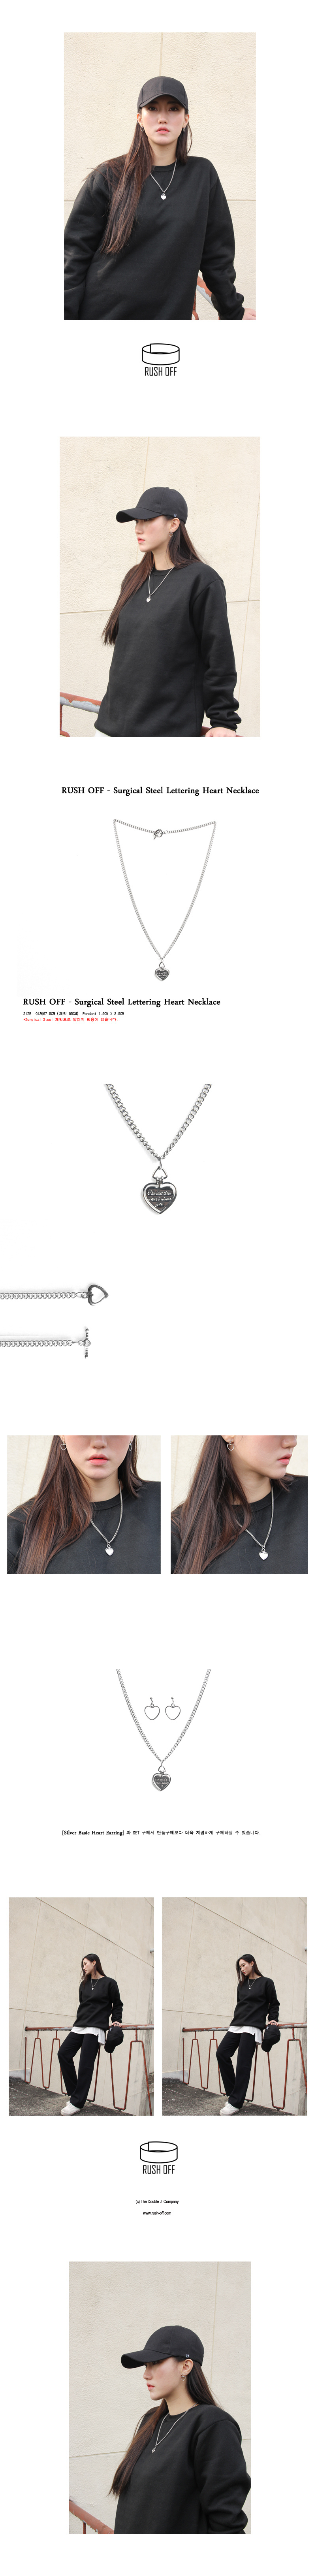 러쉬오프(RUSH OFF) RUSH OFF [Surgical Steel] LETTERING HEART NECKLACE/ 레터링 하트 목걸이